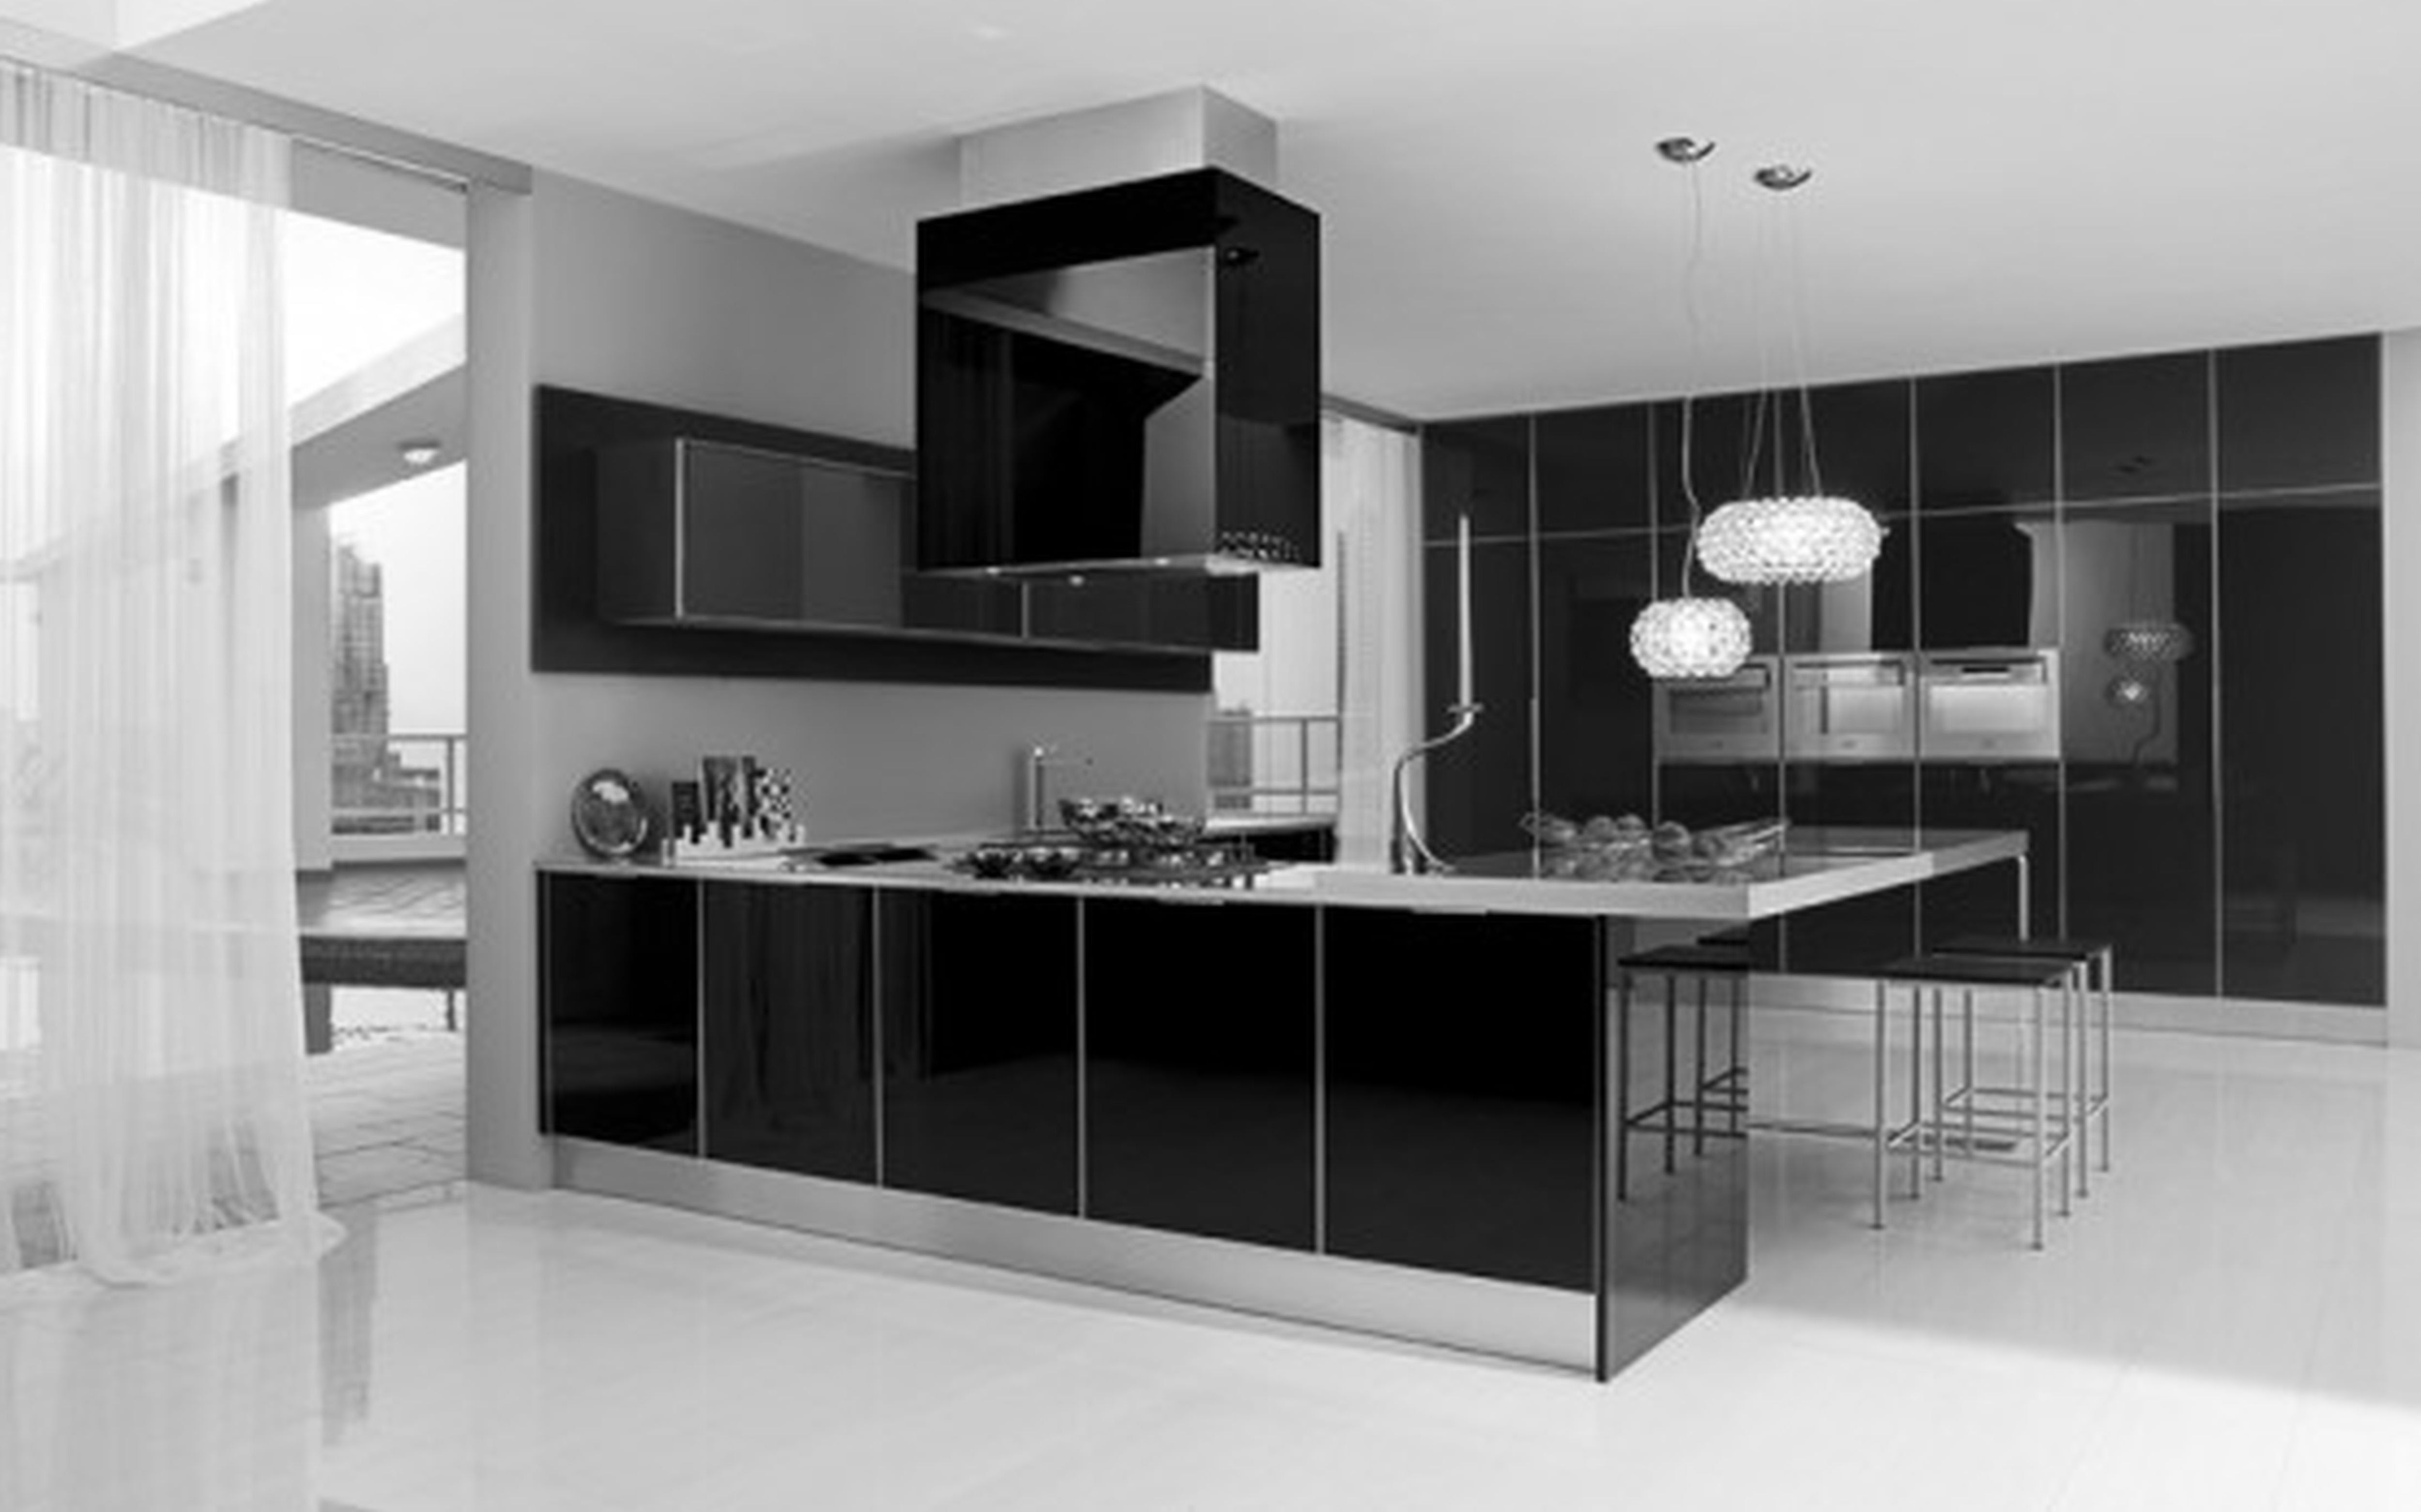 48+ Modern Kitchen Designs For Small Houses Pics - Perfect Home Pictures